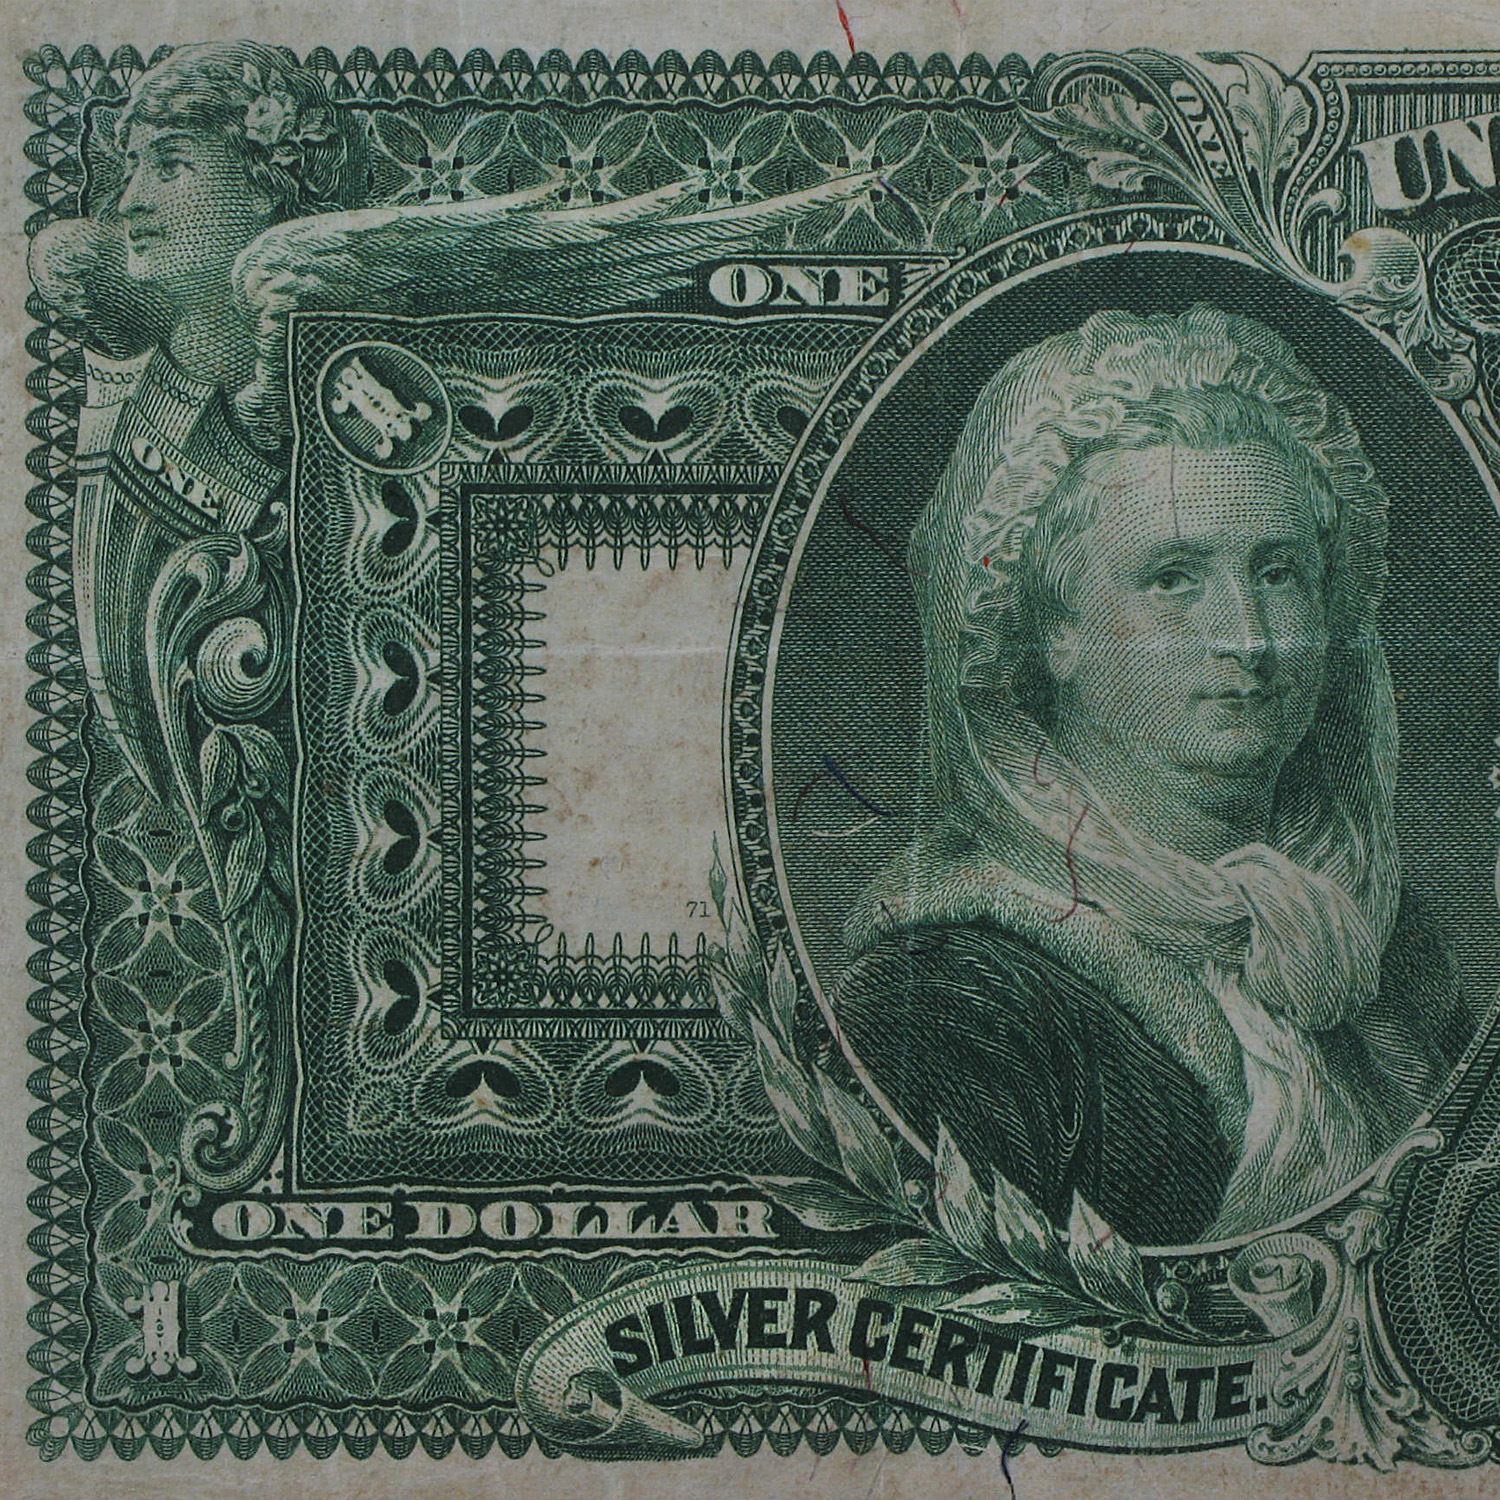 1896 $1.00 Silver Certificate - Educational (Very Fine)